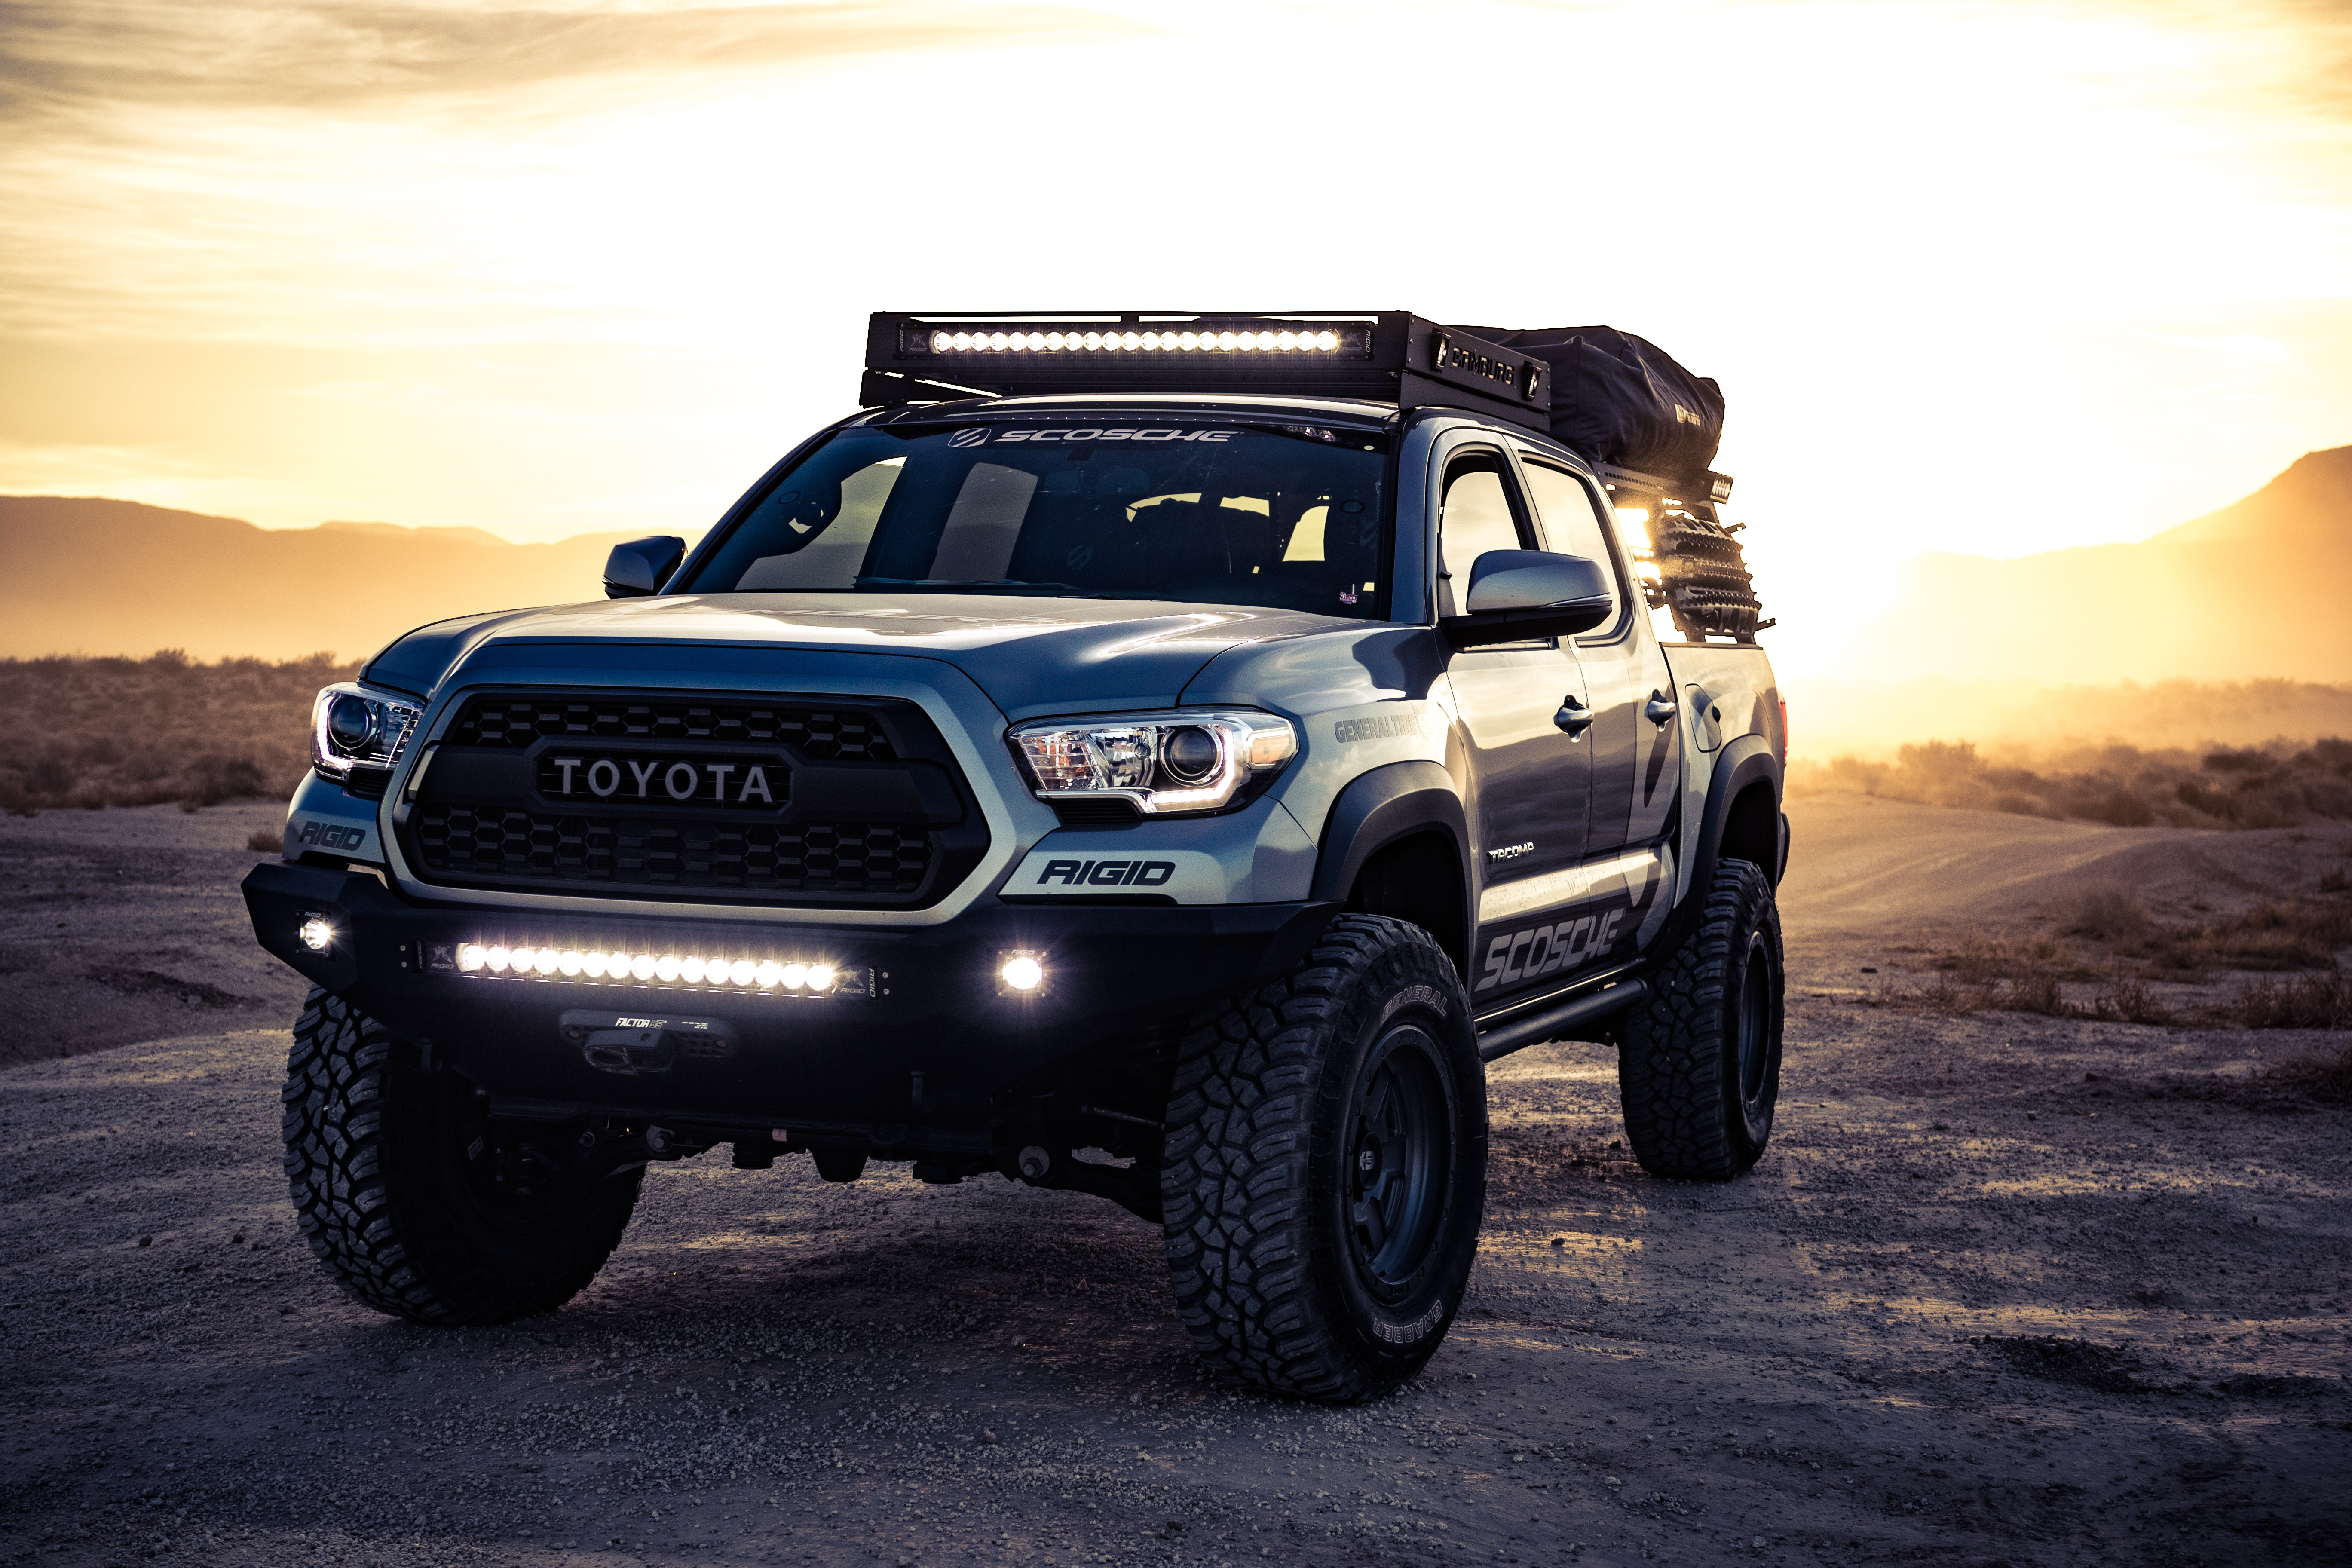 camburg camburg tacoma fox 1149138 - Toyota 4x4 Tacome 2019 4k - Toyota 4x4 Tacome 2019 4k, 2019 toyota wallpapers 4k, 2019 tacome wallpapers